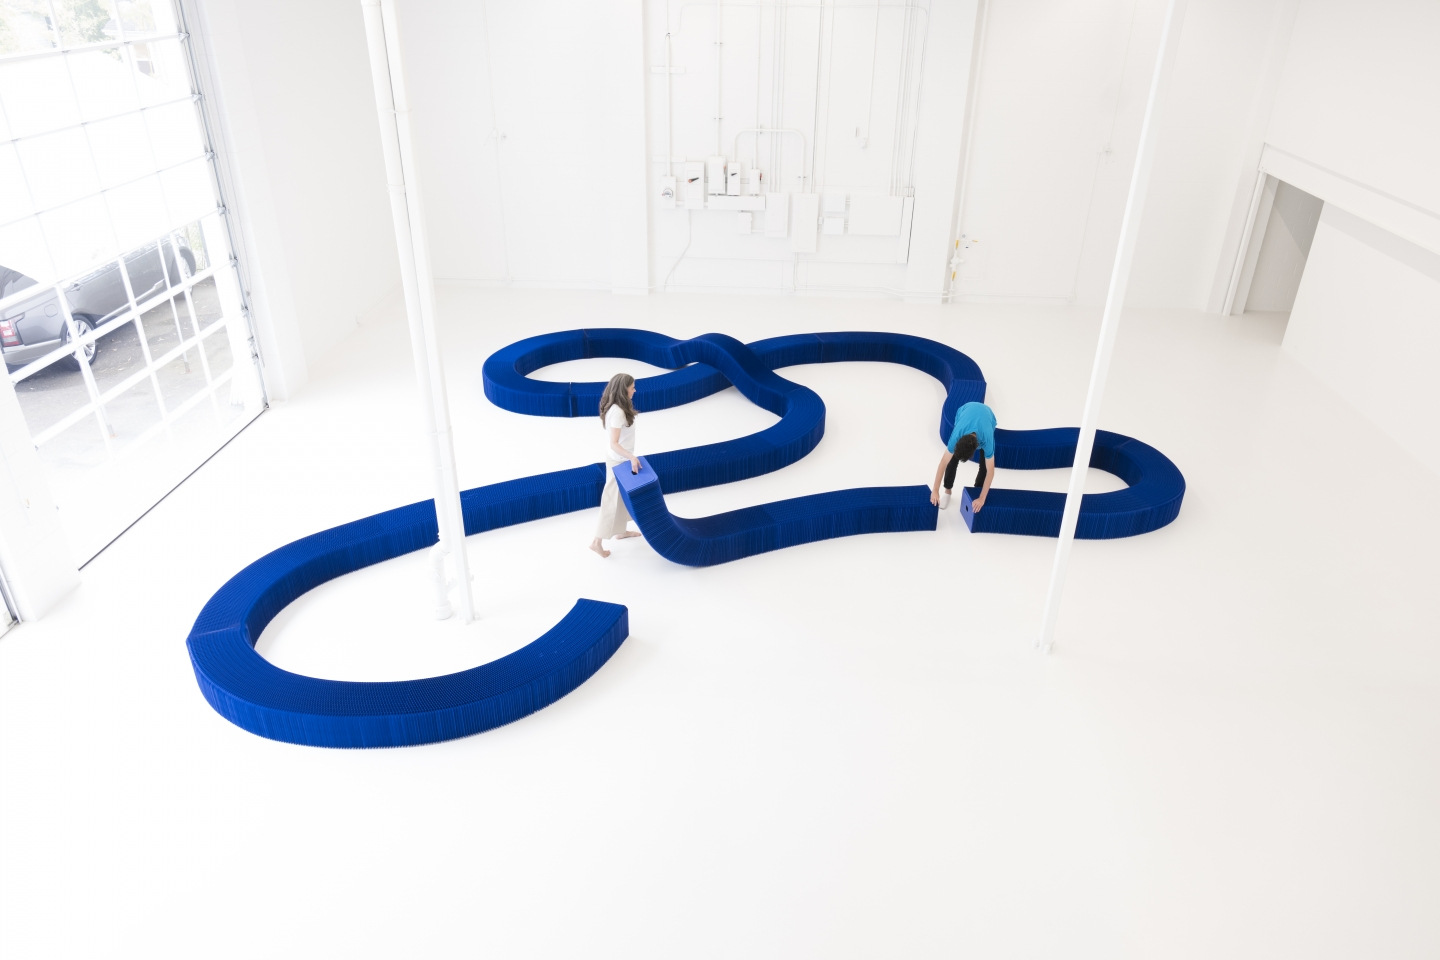 Indigo paper softseating connected to form a serpentine bench.